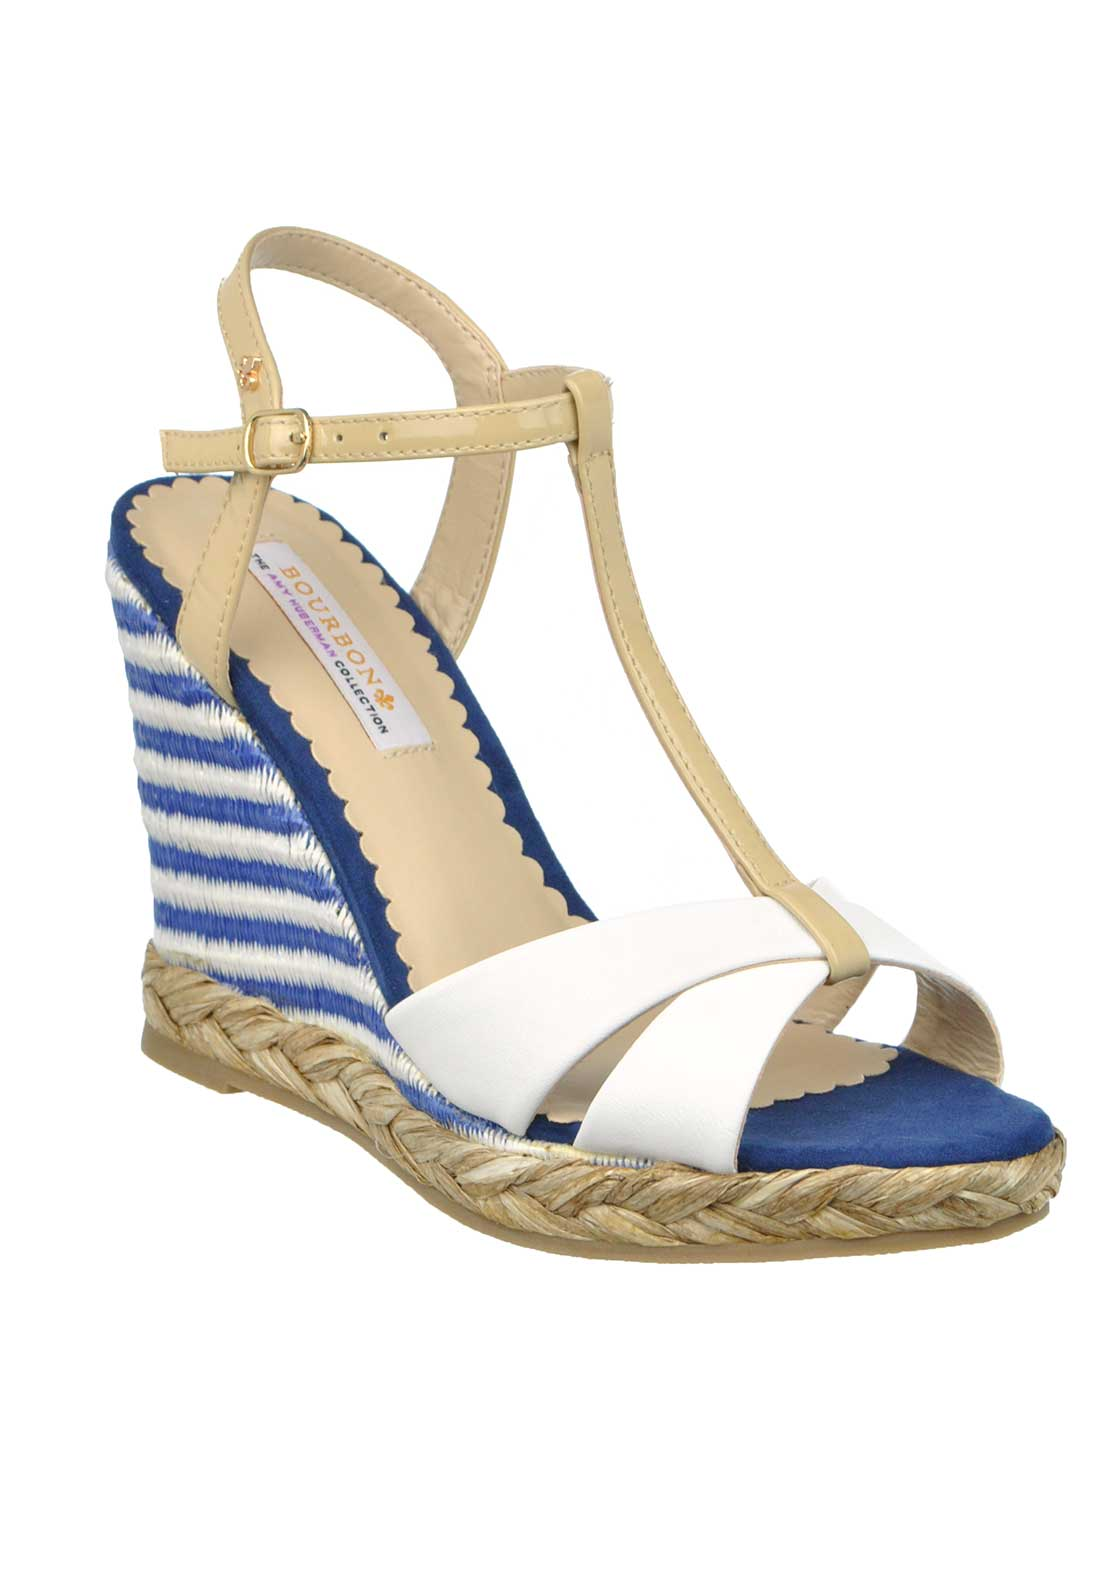 Amy Huberman Bourbon Always Married Leather Sandal